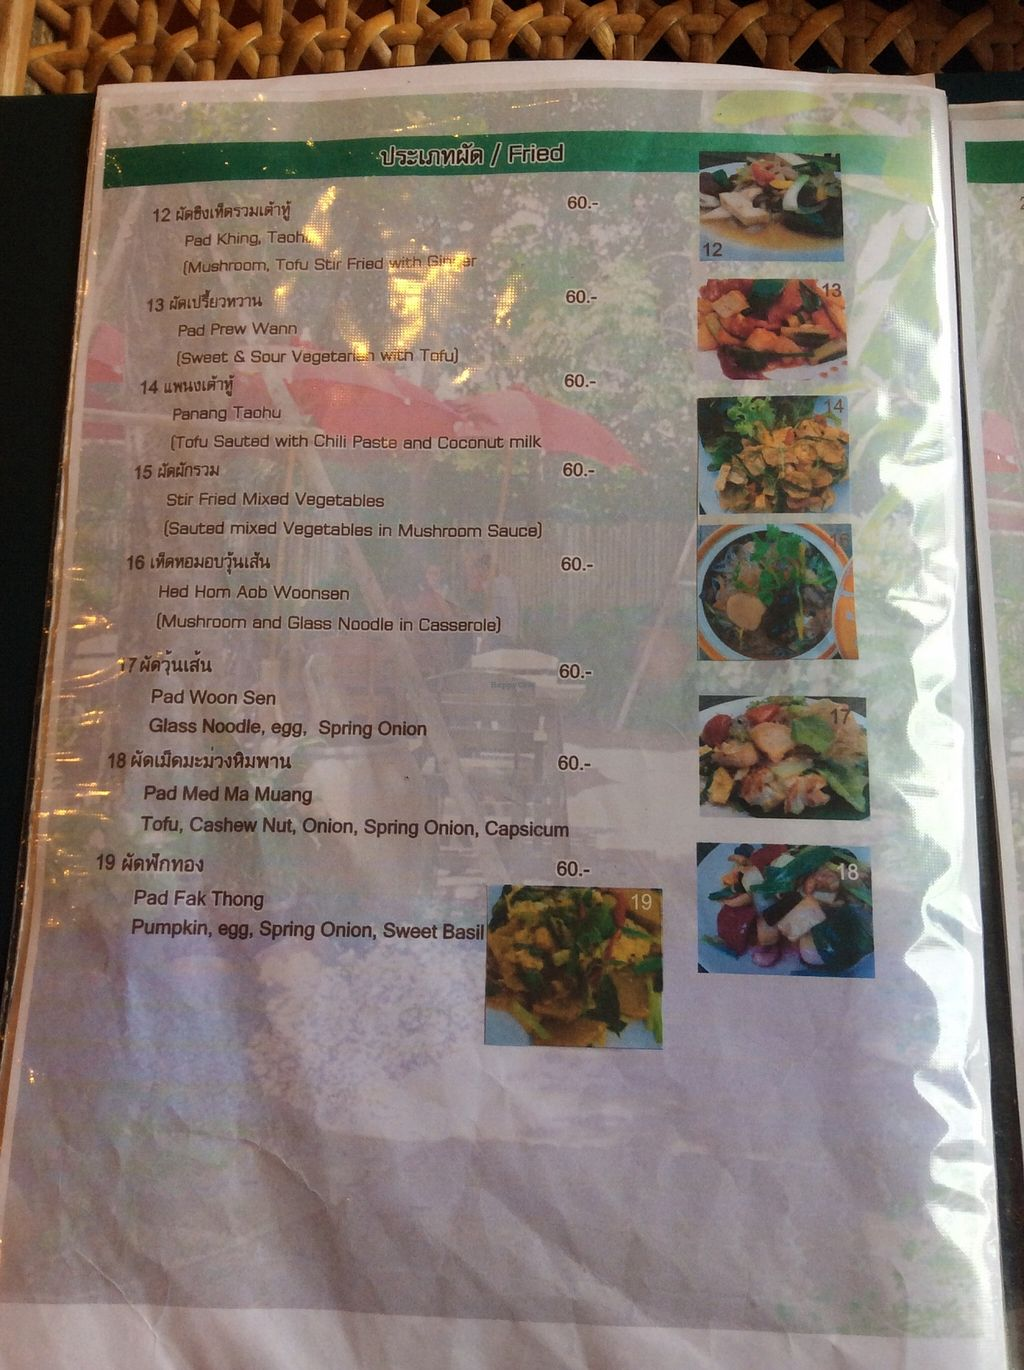 """Photo of Fuang Vegetarian  by <a href=""""/members/profile/samesamebutvegan"""">samesamebutvegan</a> <br/>Fried dishes <br/> January 26, 2016  - <a href='/contact/abuse/image/40611/133824'>Report</a>"""